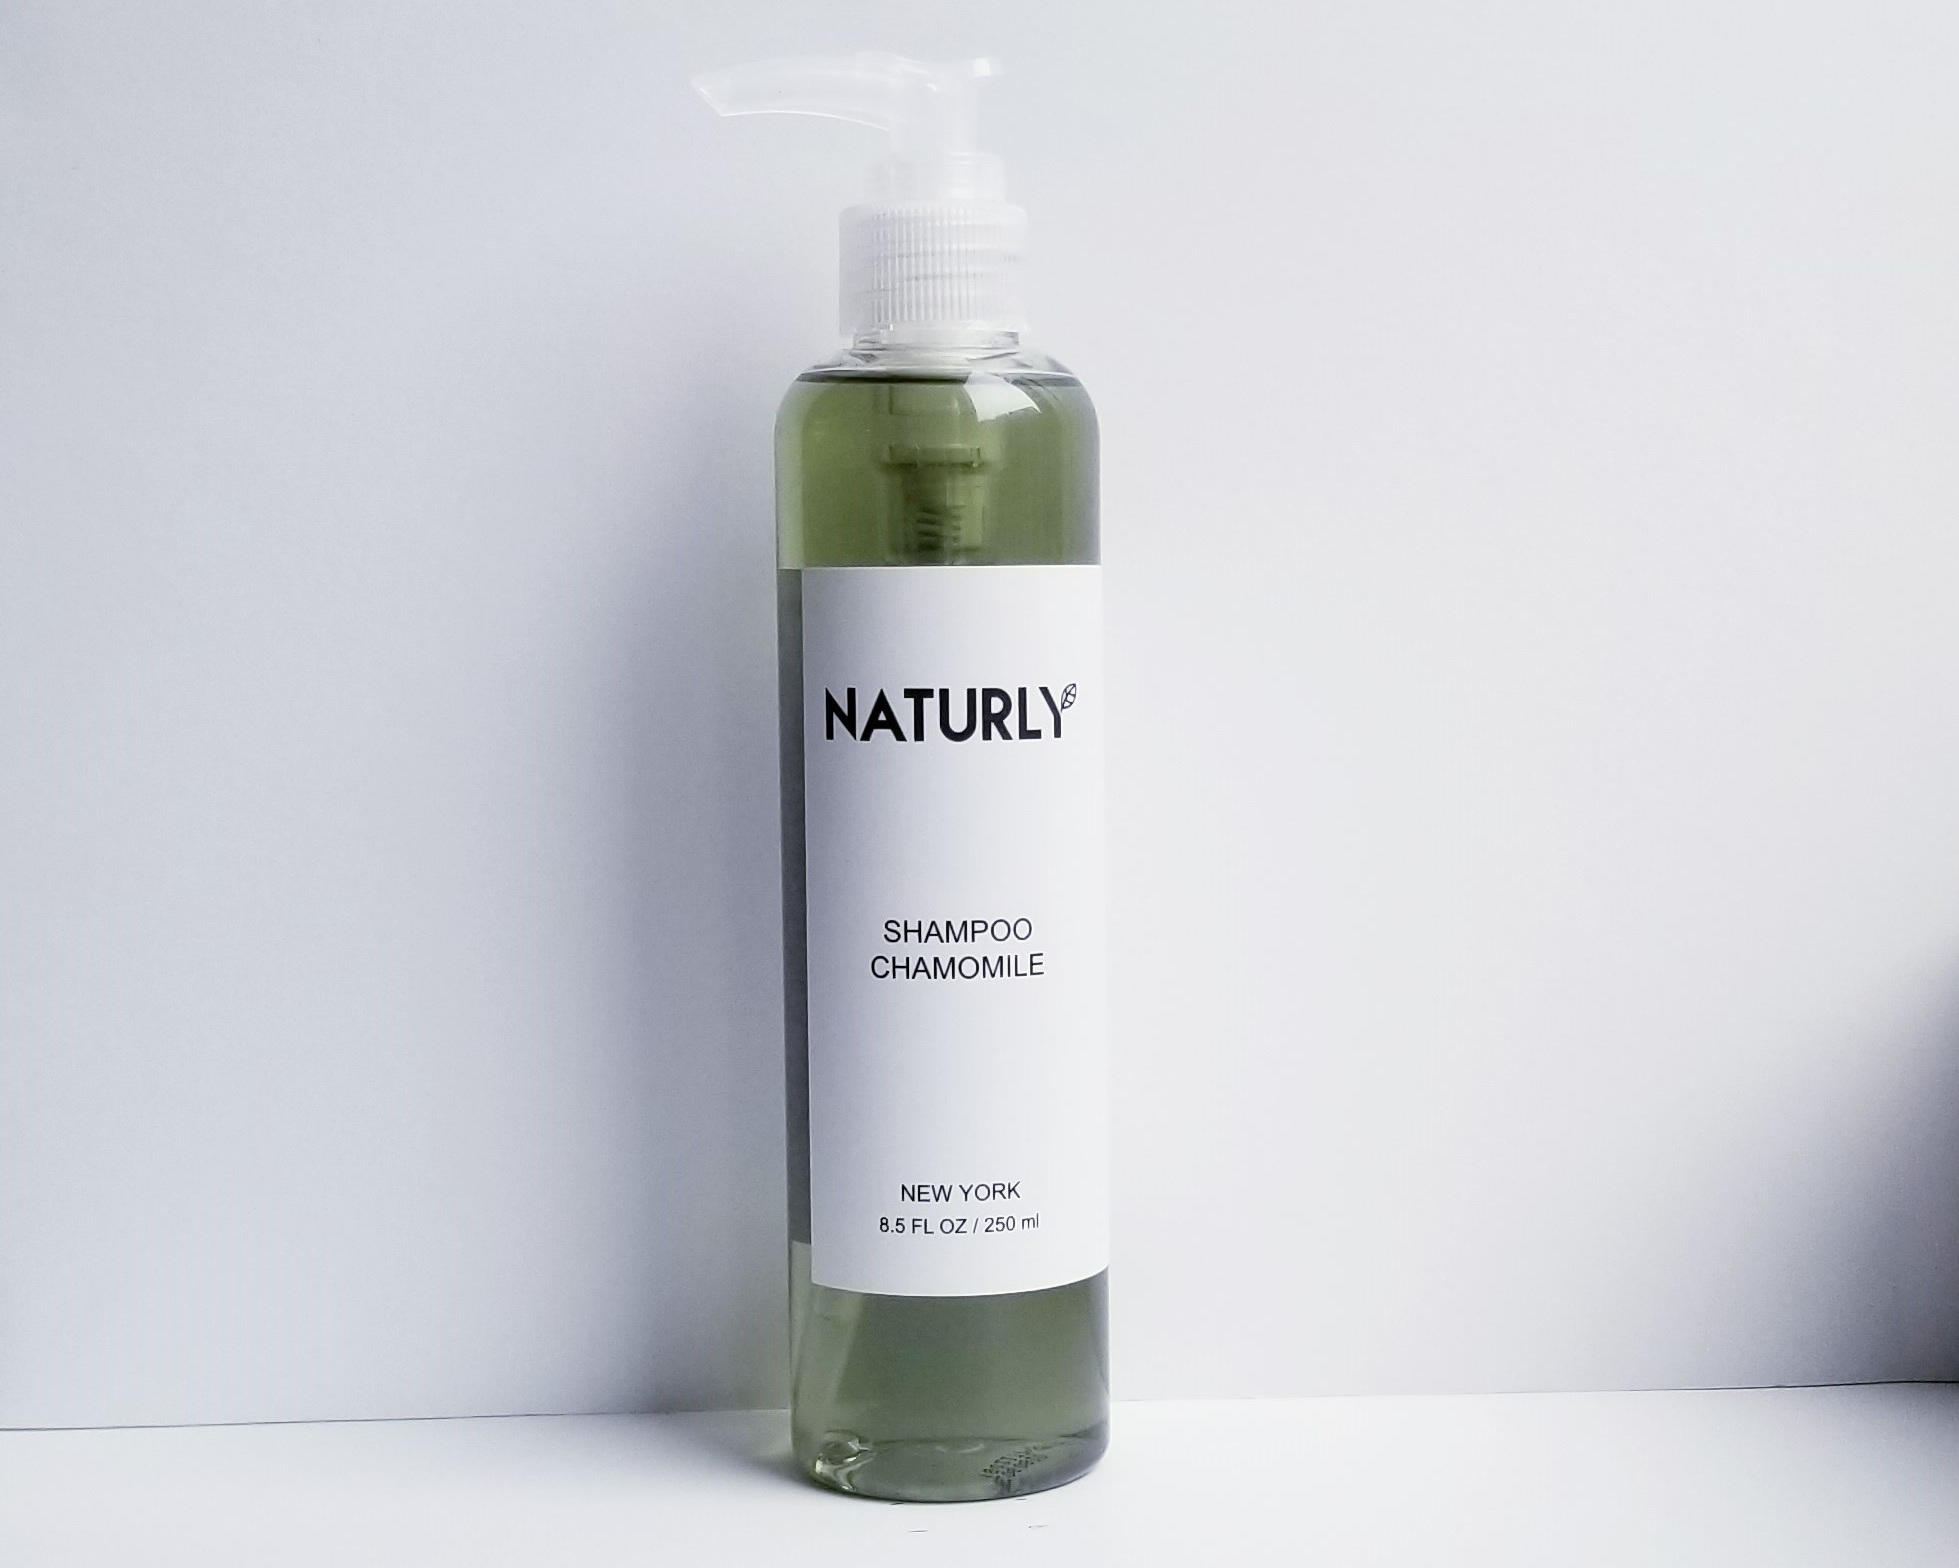 Shampoo with chamomile & lavendar oils, anti-oxidant chlorophyl extract - $24